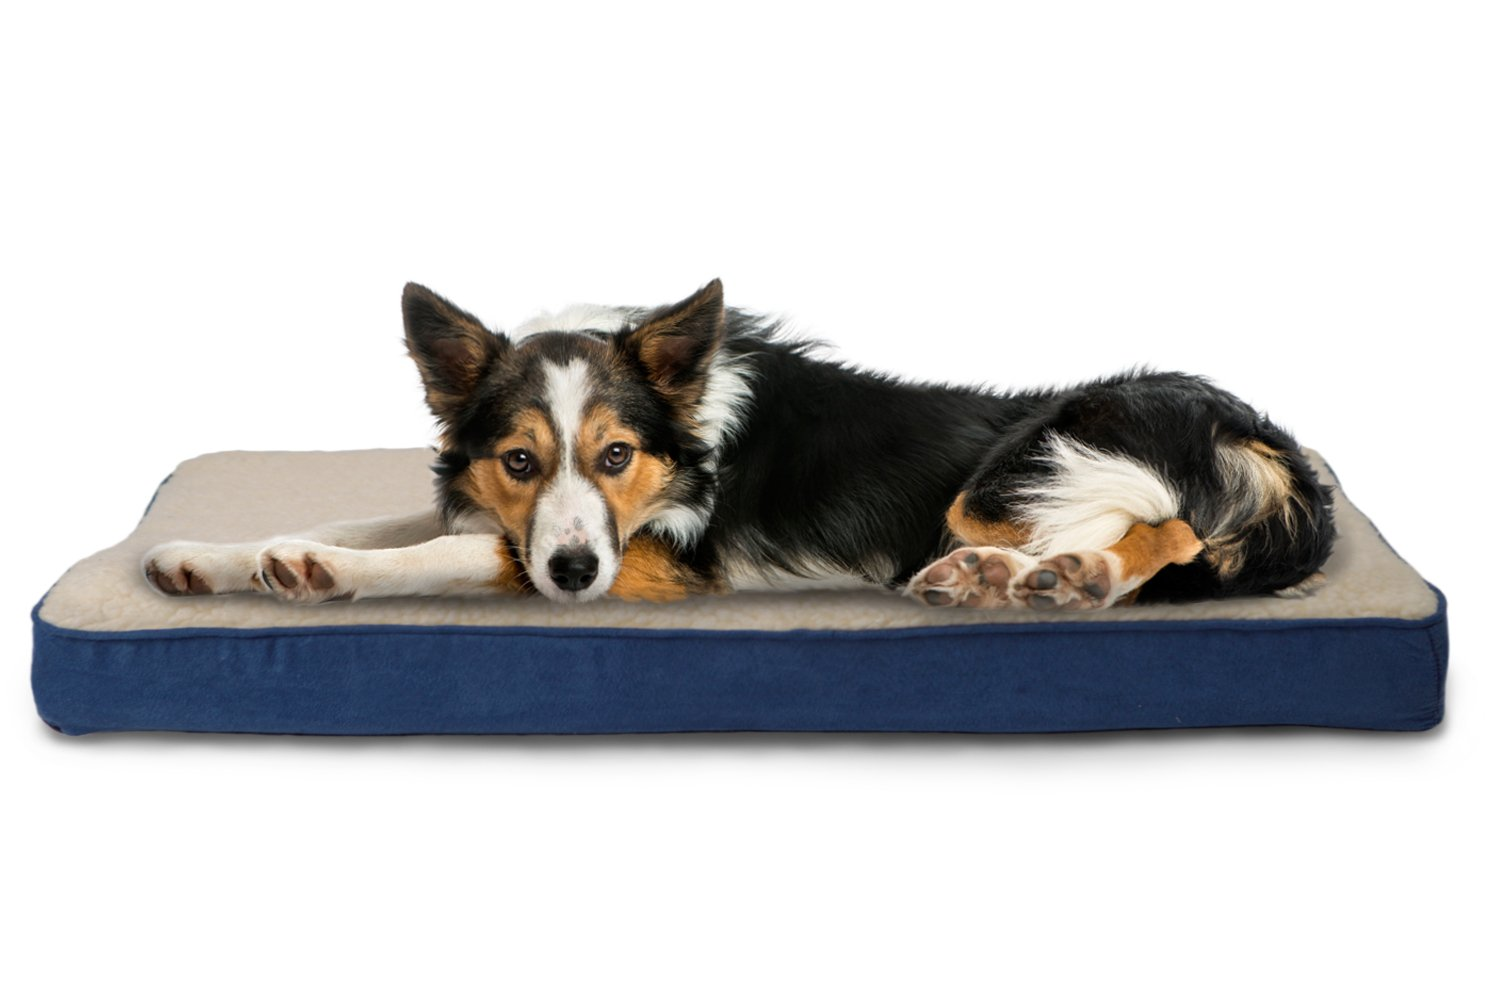 FurHaven Pet Dog Bed   Memory Foam Sherpa & Suede Mattress Pet Bed for Dogs & Cats, Navy, Large